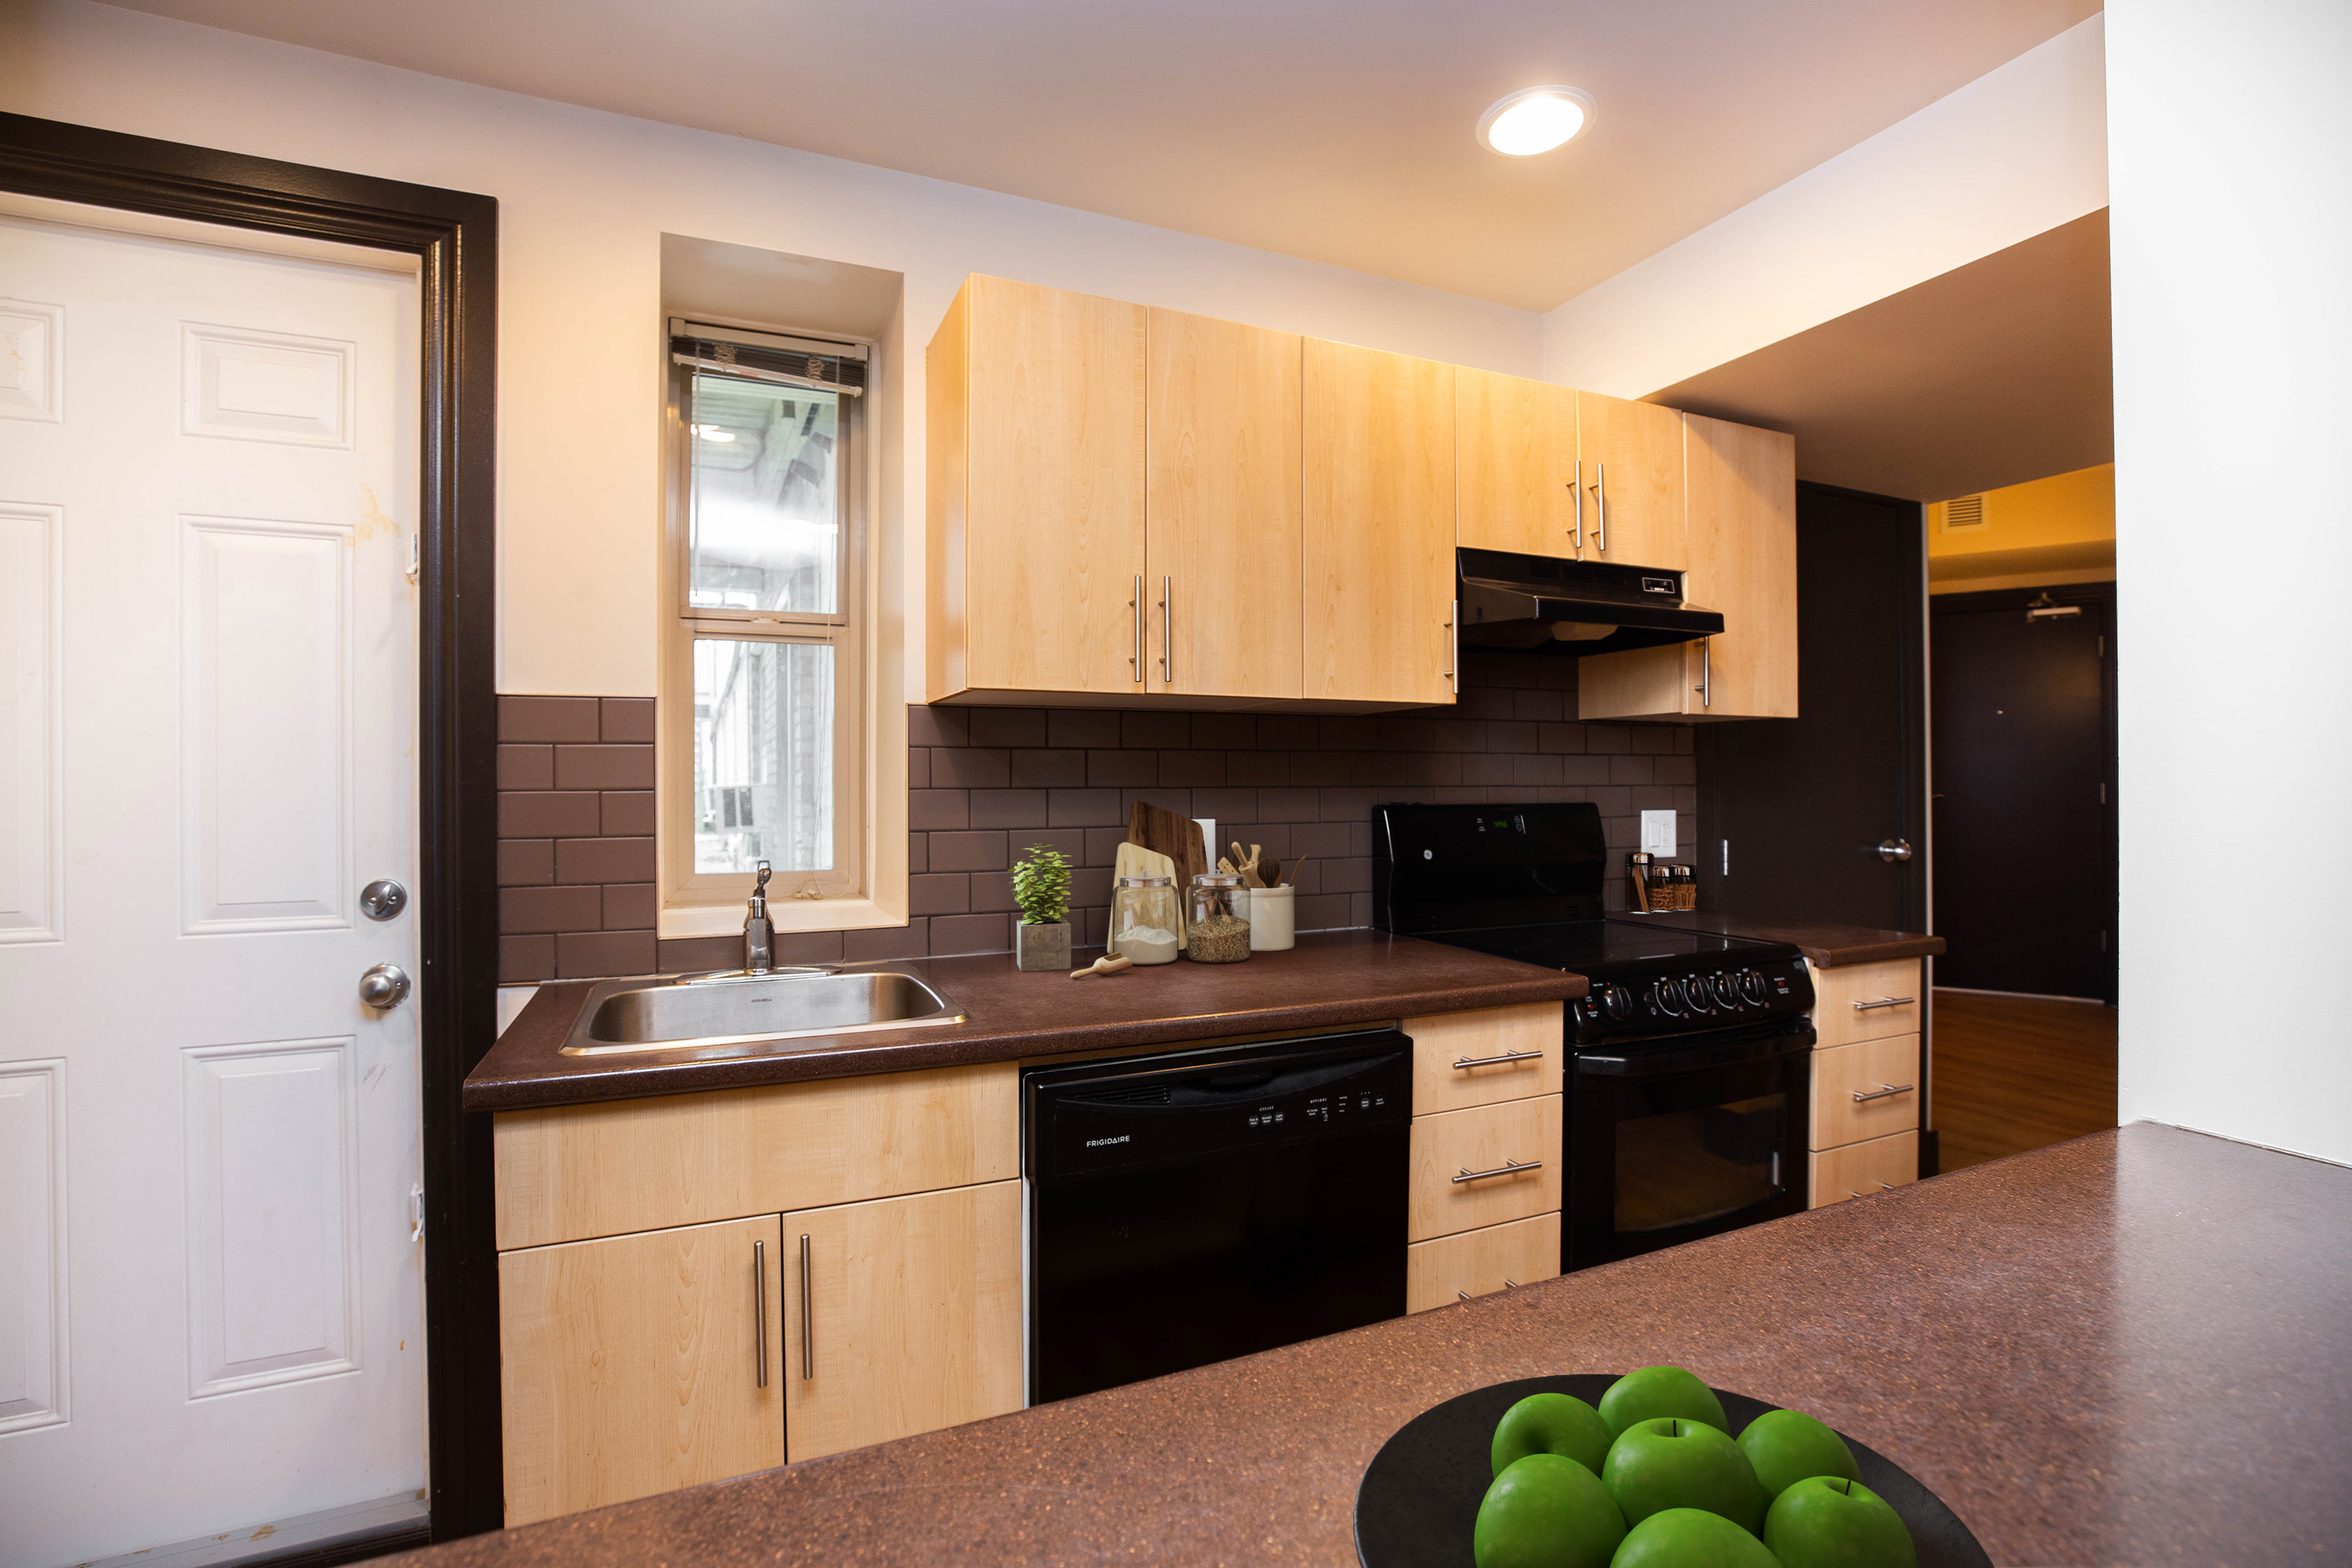 Towers Realty Group - The Ritz - 2BR - Kitchen